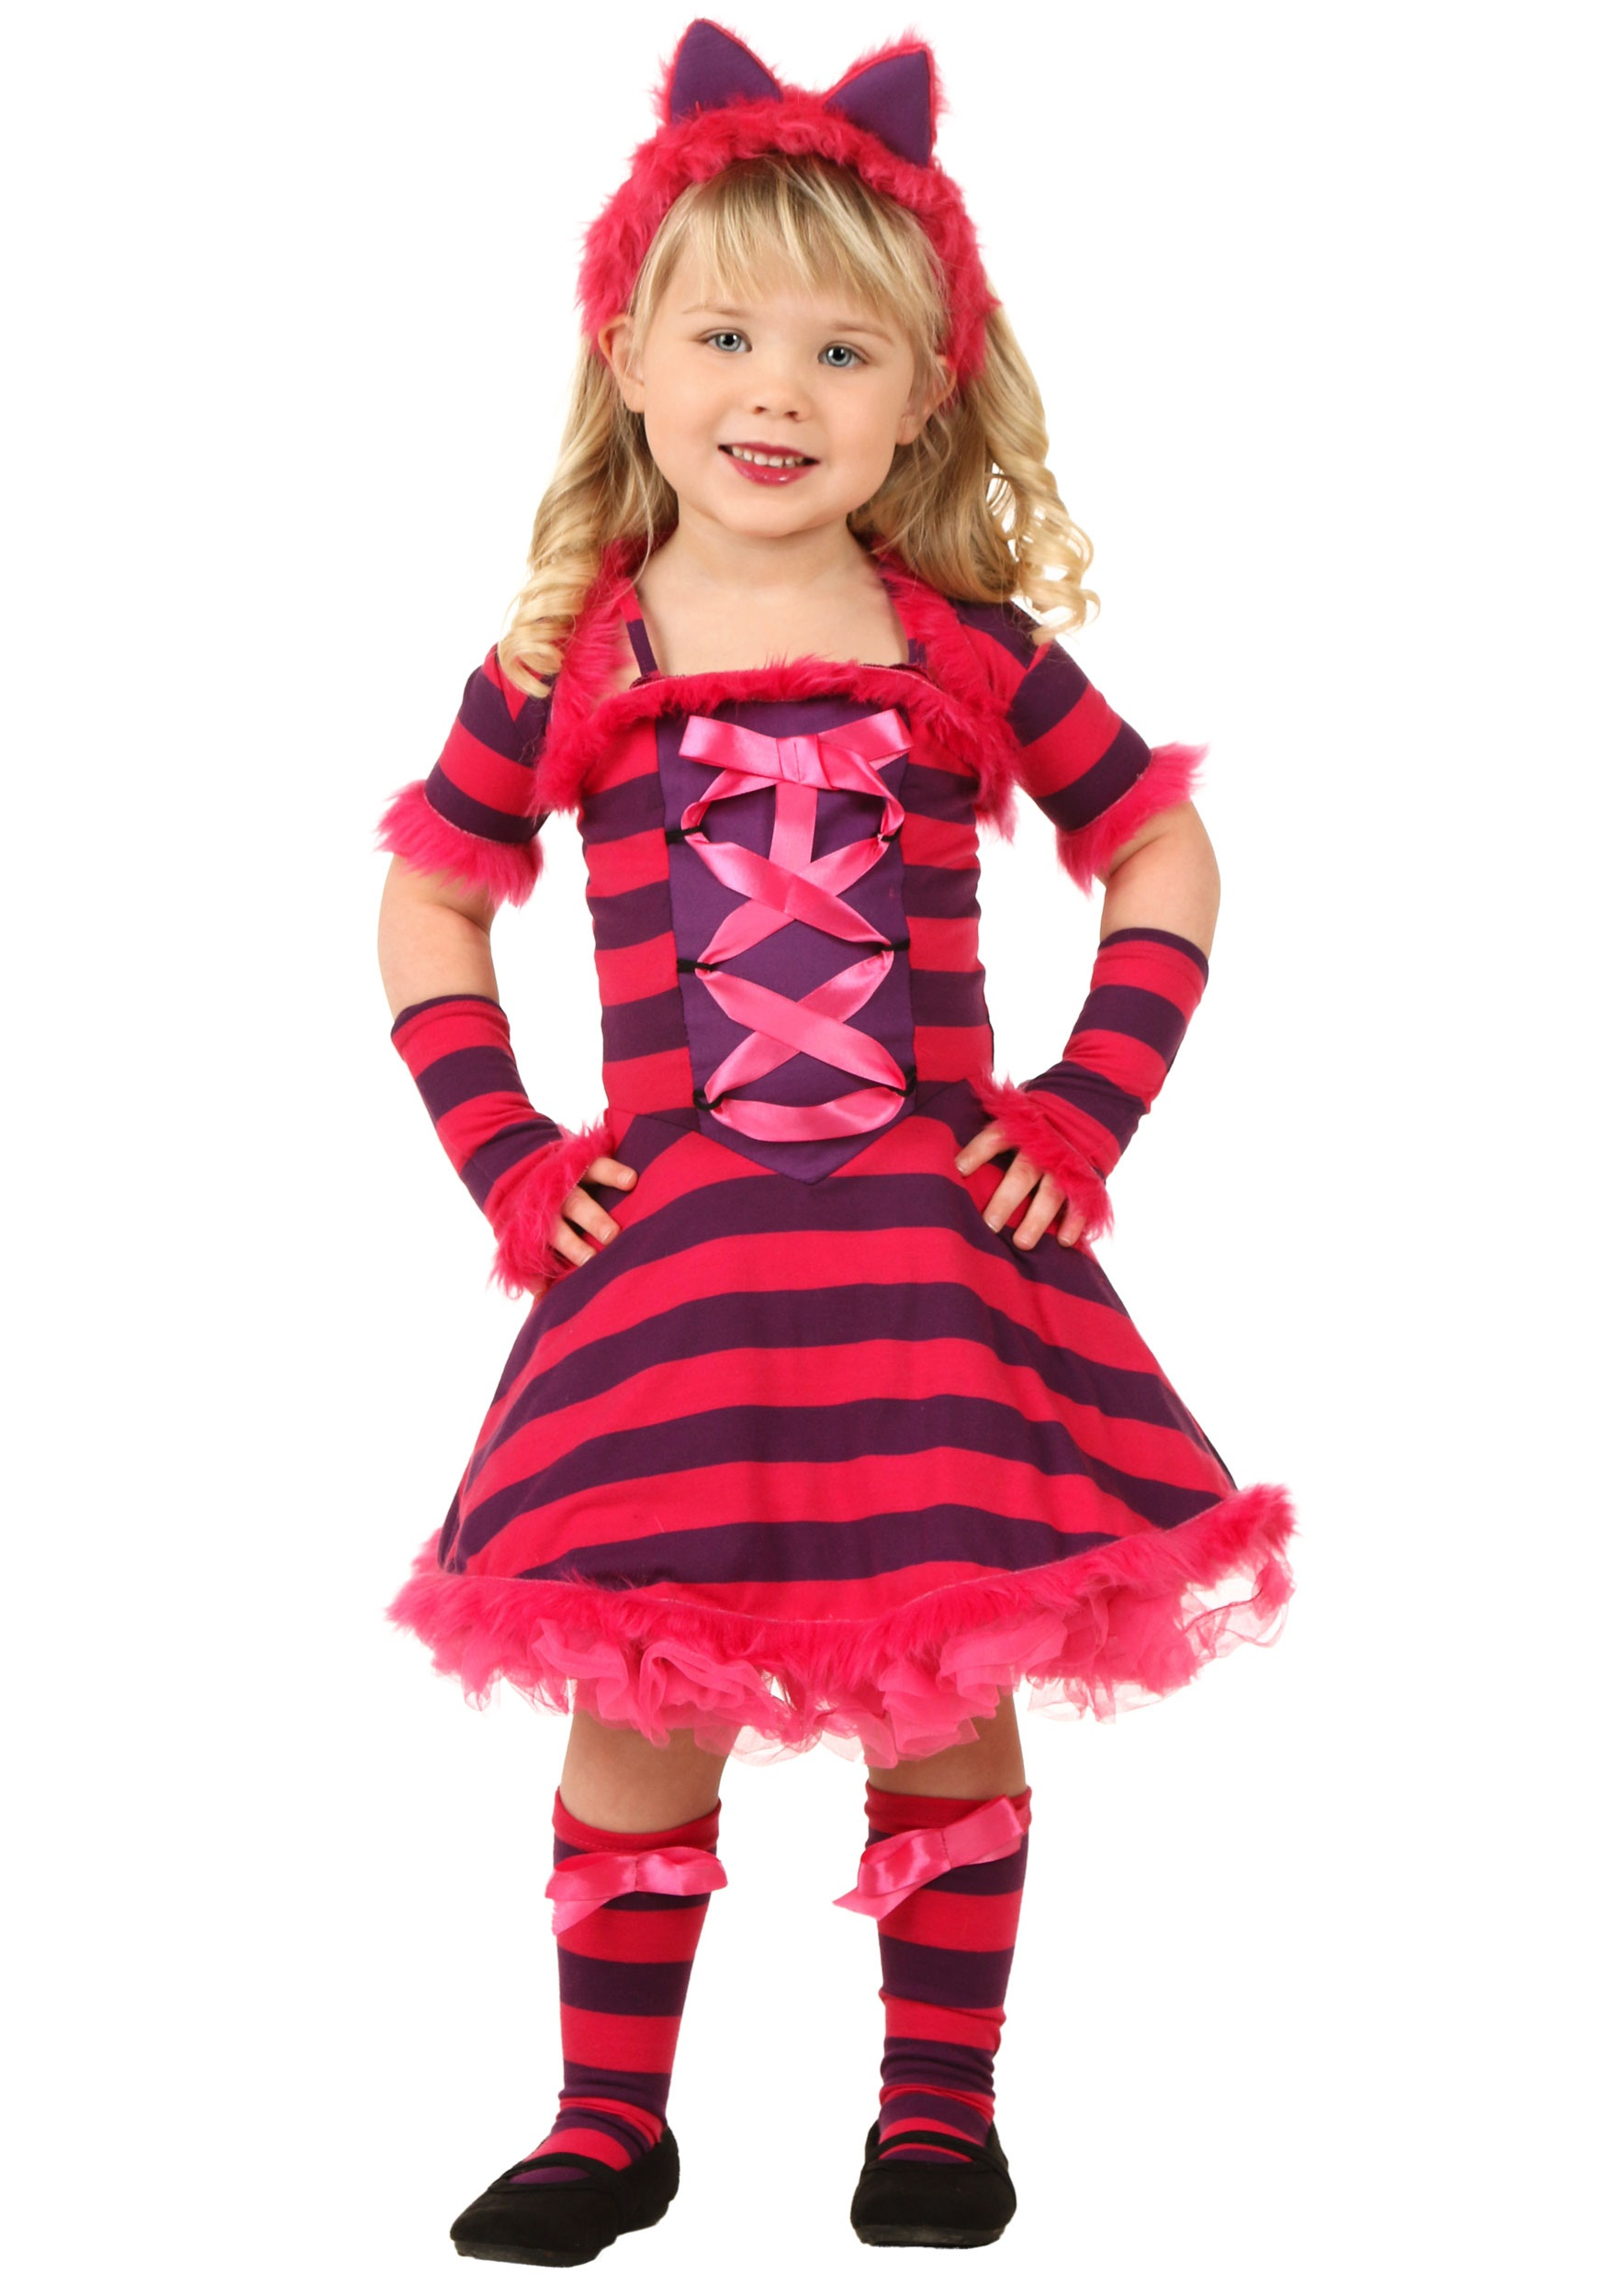 Girls Animals & Bugs Costumes For sure-to-impress girl's animals costumes, stick with the classics. Buy your daughter an adorable bunny, a fluffy dog or a feminine cat costume.